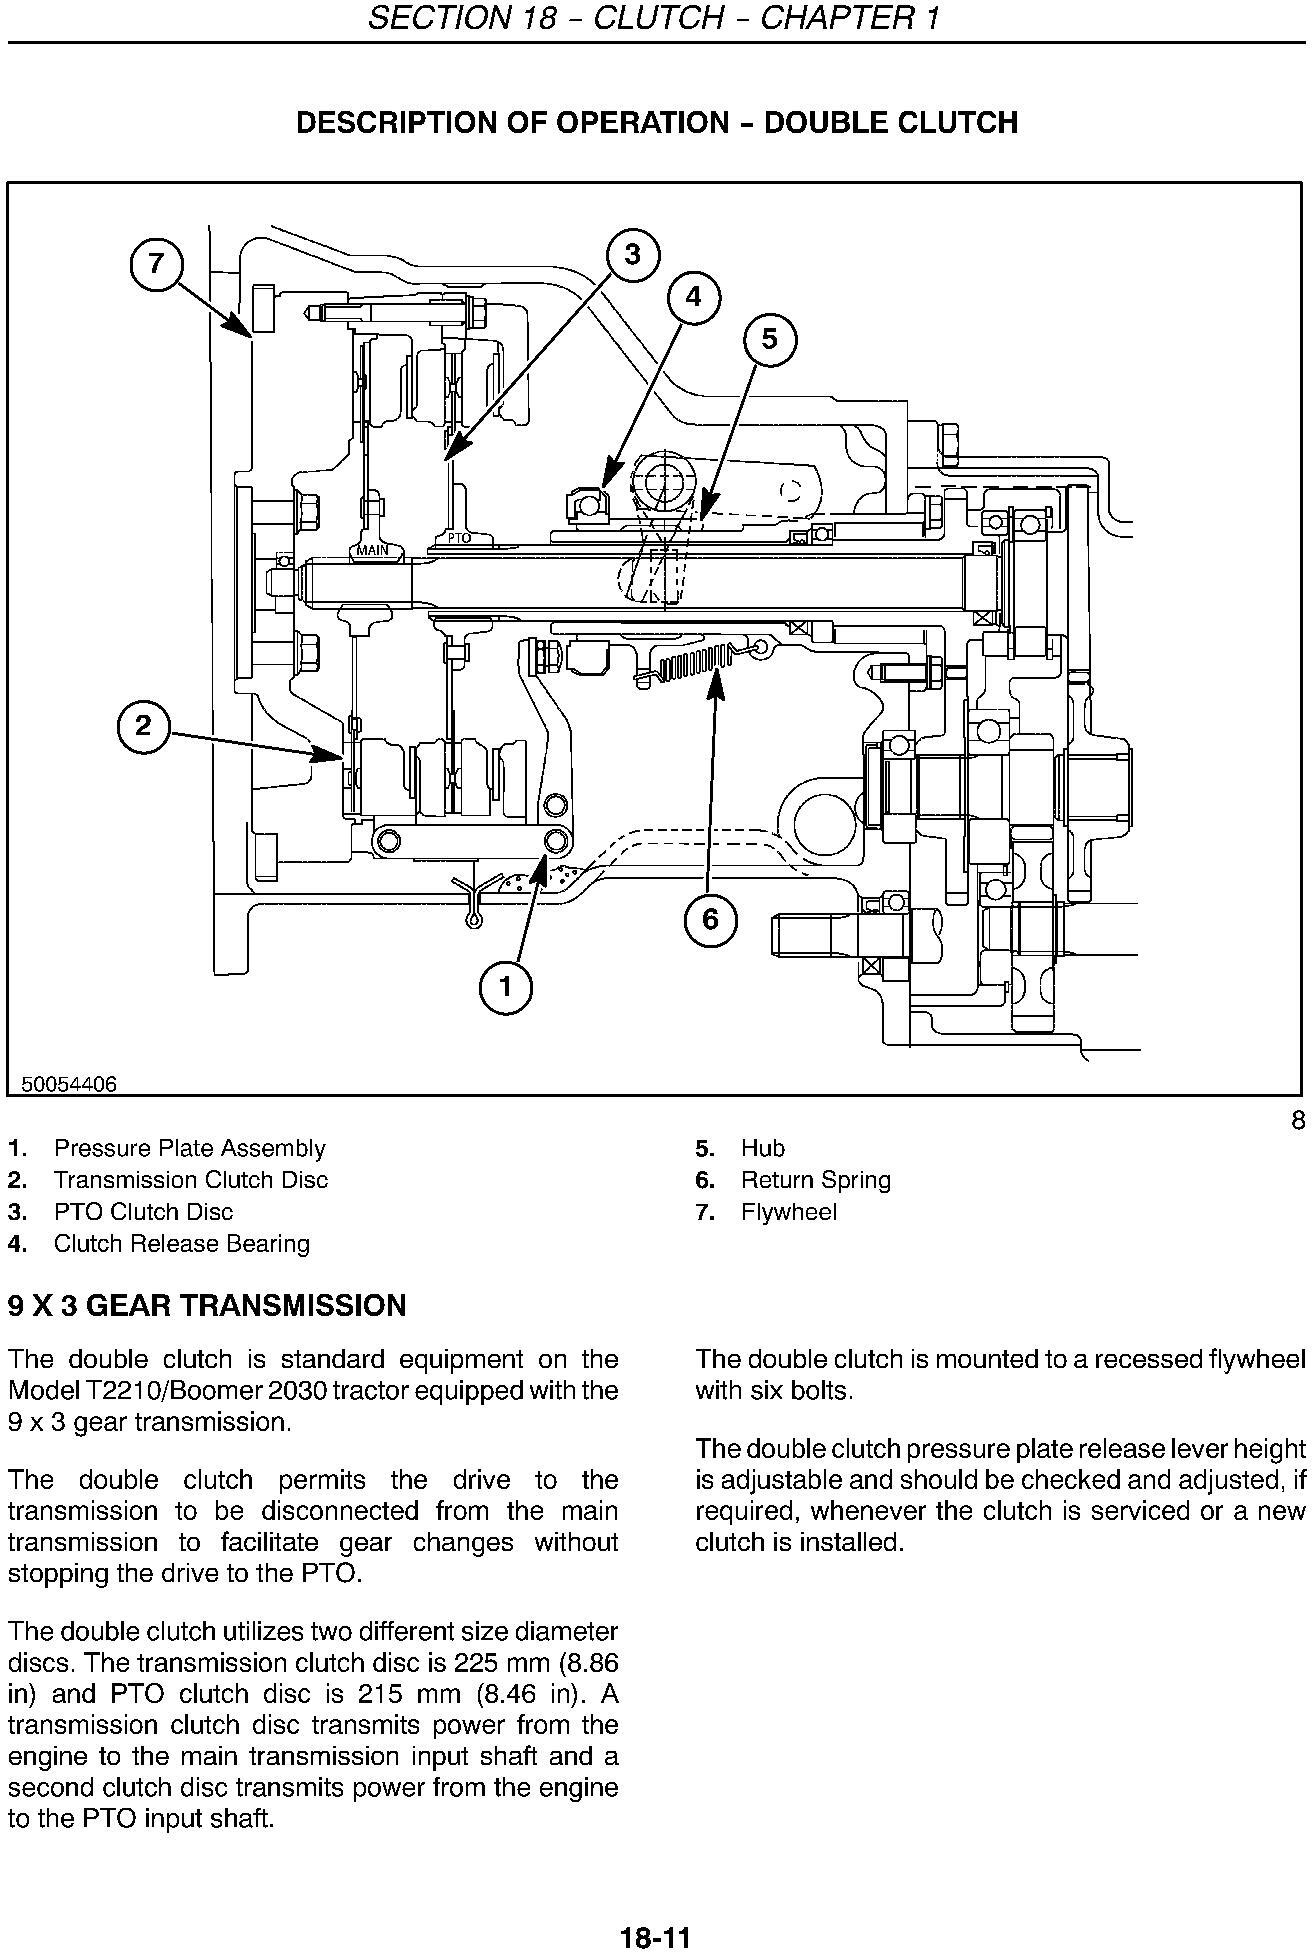 New Holland T2210, T2220, Boomer 2030, Boomer 2035 Compact Tractor Service Manual - 1